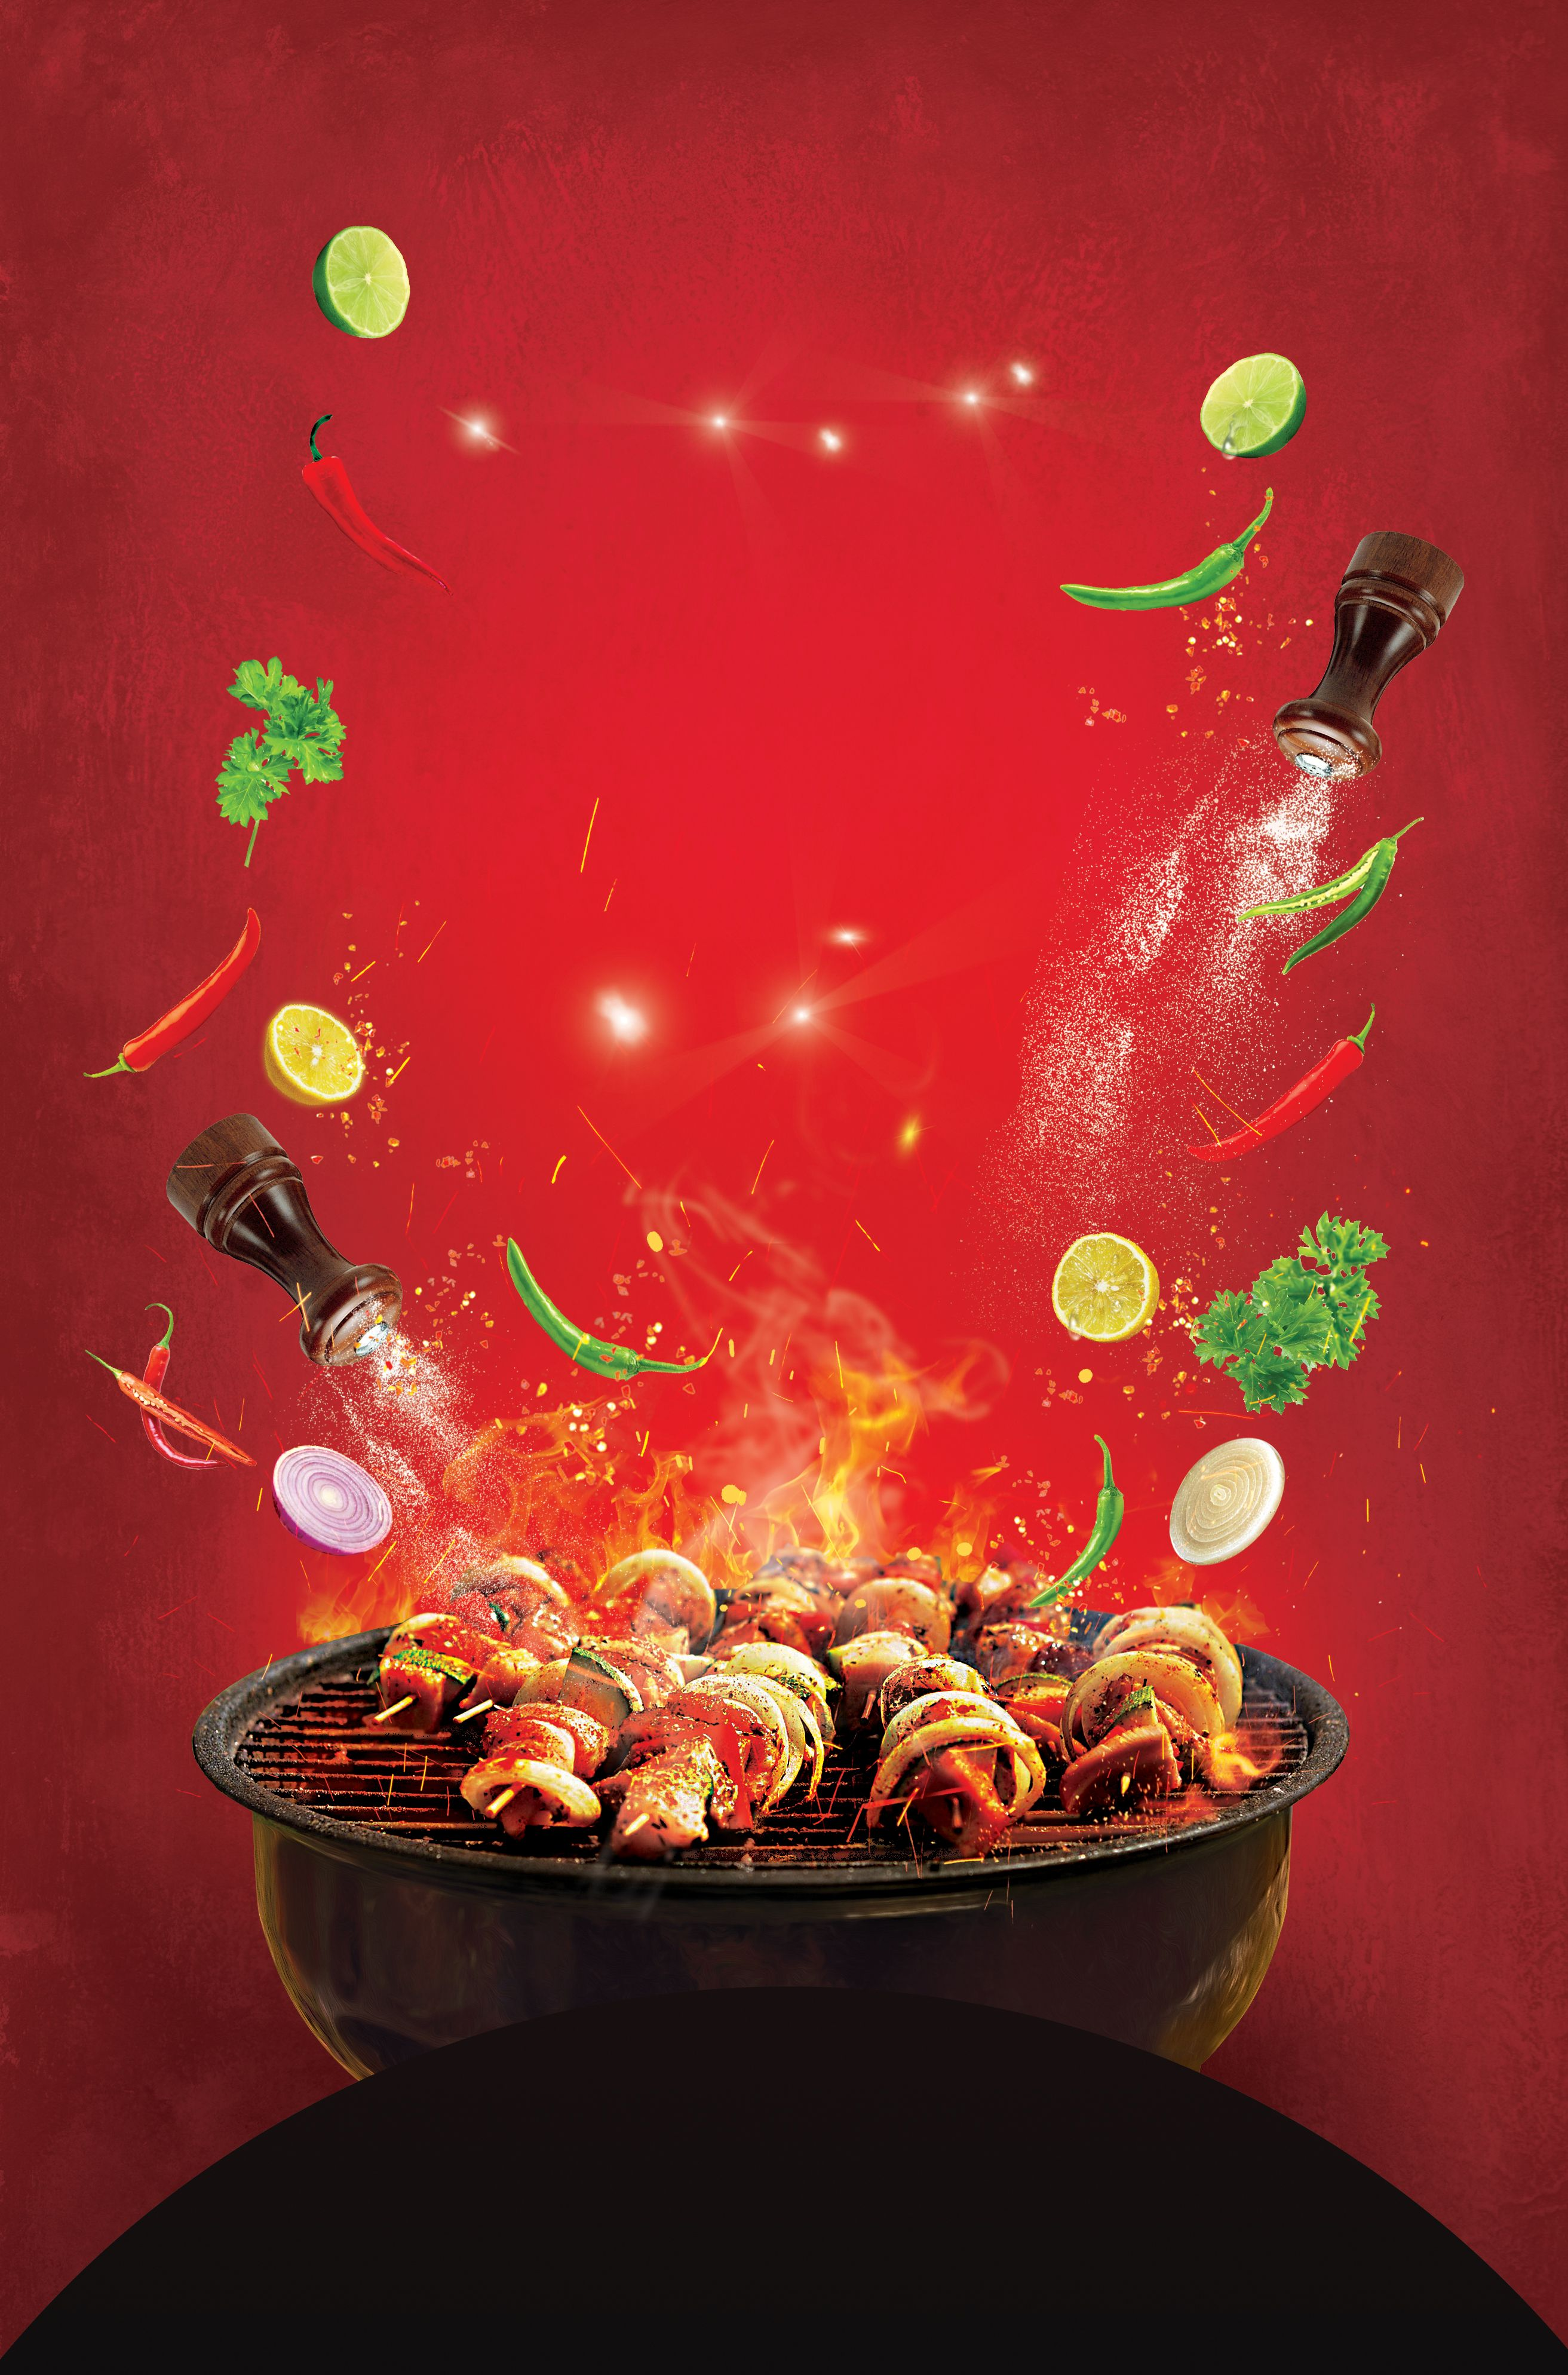 Barbecue Poster Background In 2020 Bbq Party Bbq Lamb Barbecue